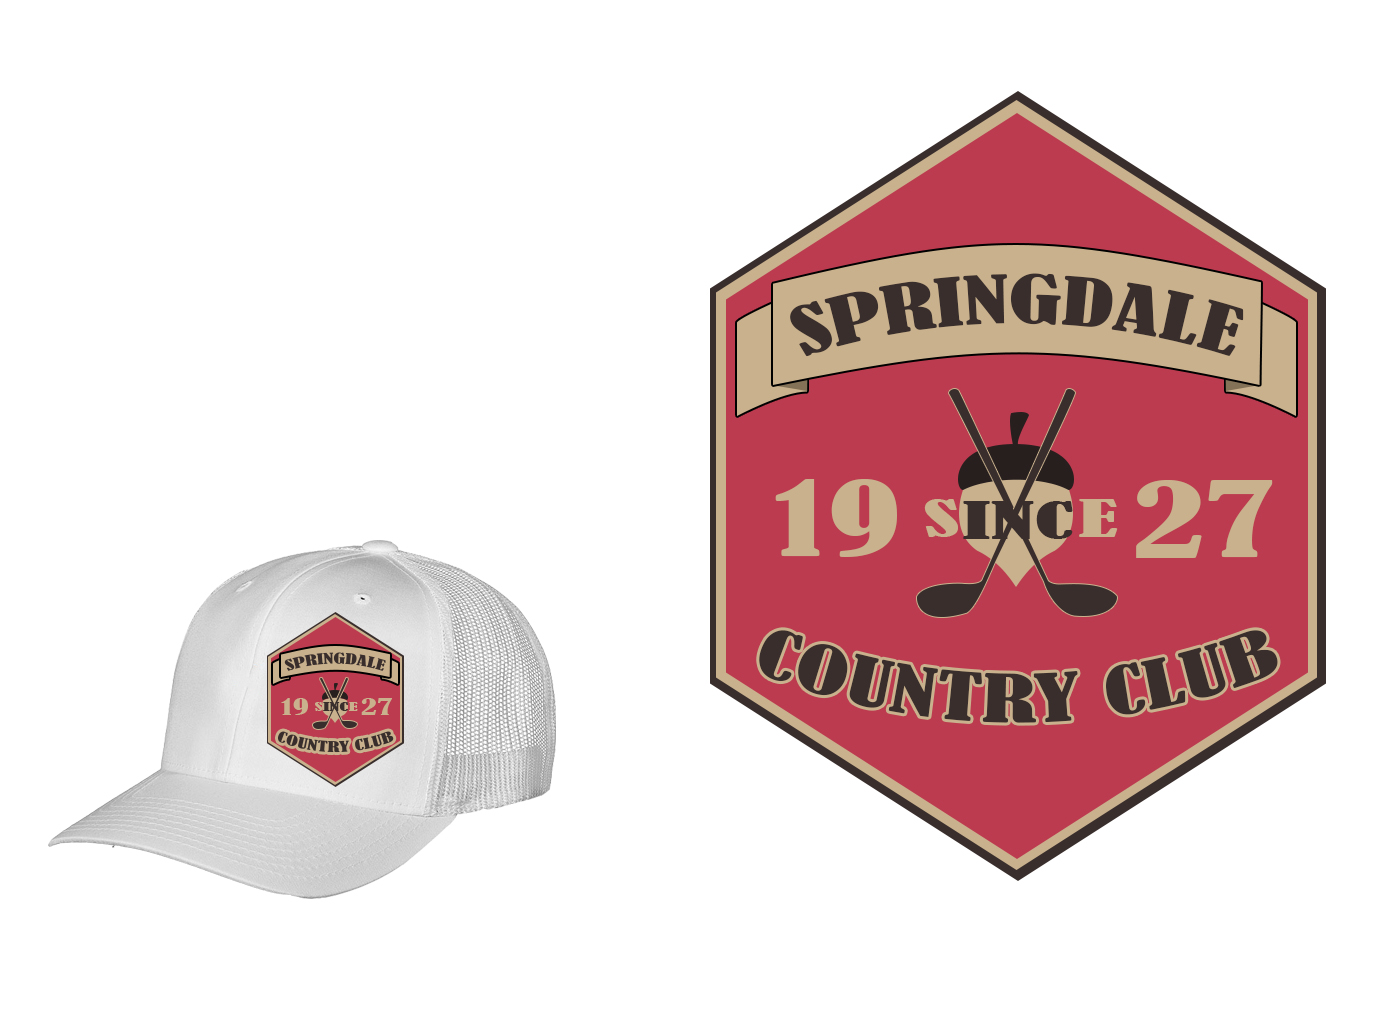 Logo Design by drunkman - Entry No. 117 in the Logo Design Contest Unique Logo Design Wanted for Springdale Country Club.